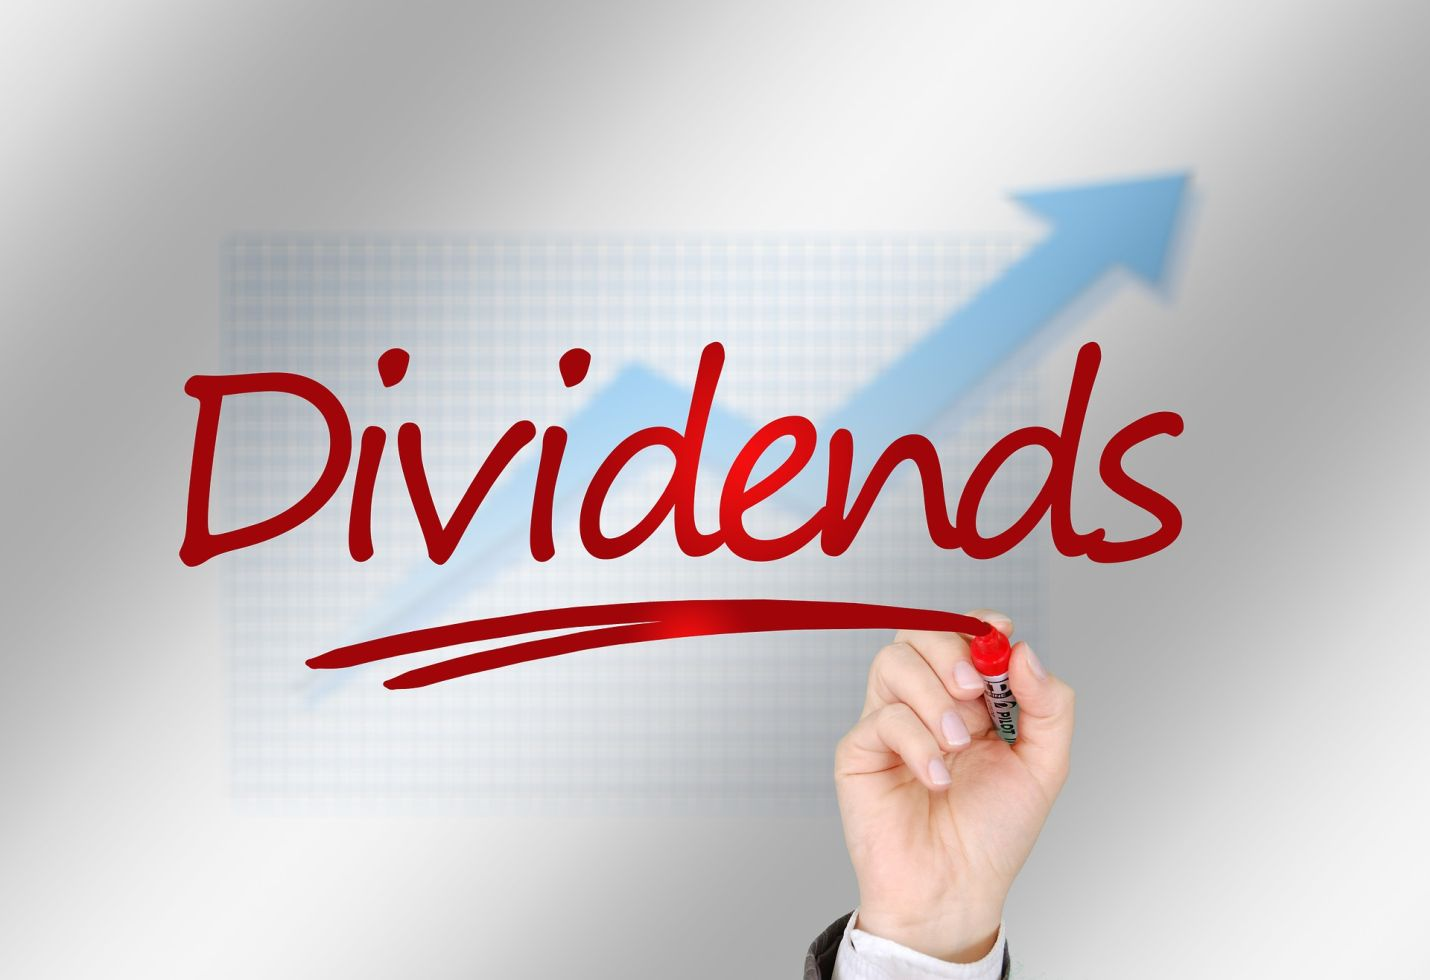 Common misconceptions about dividends